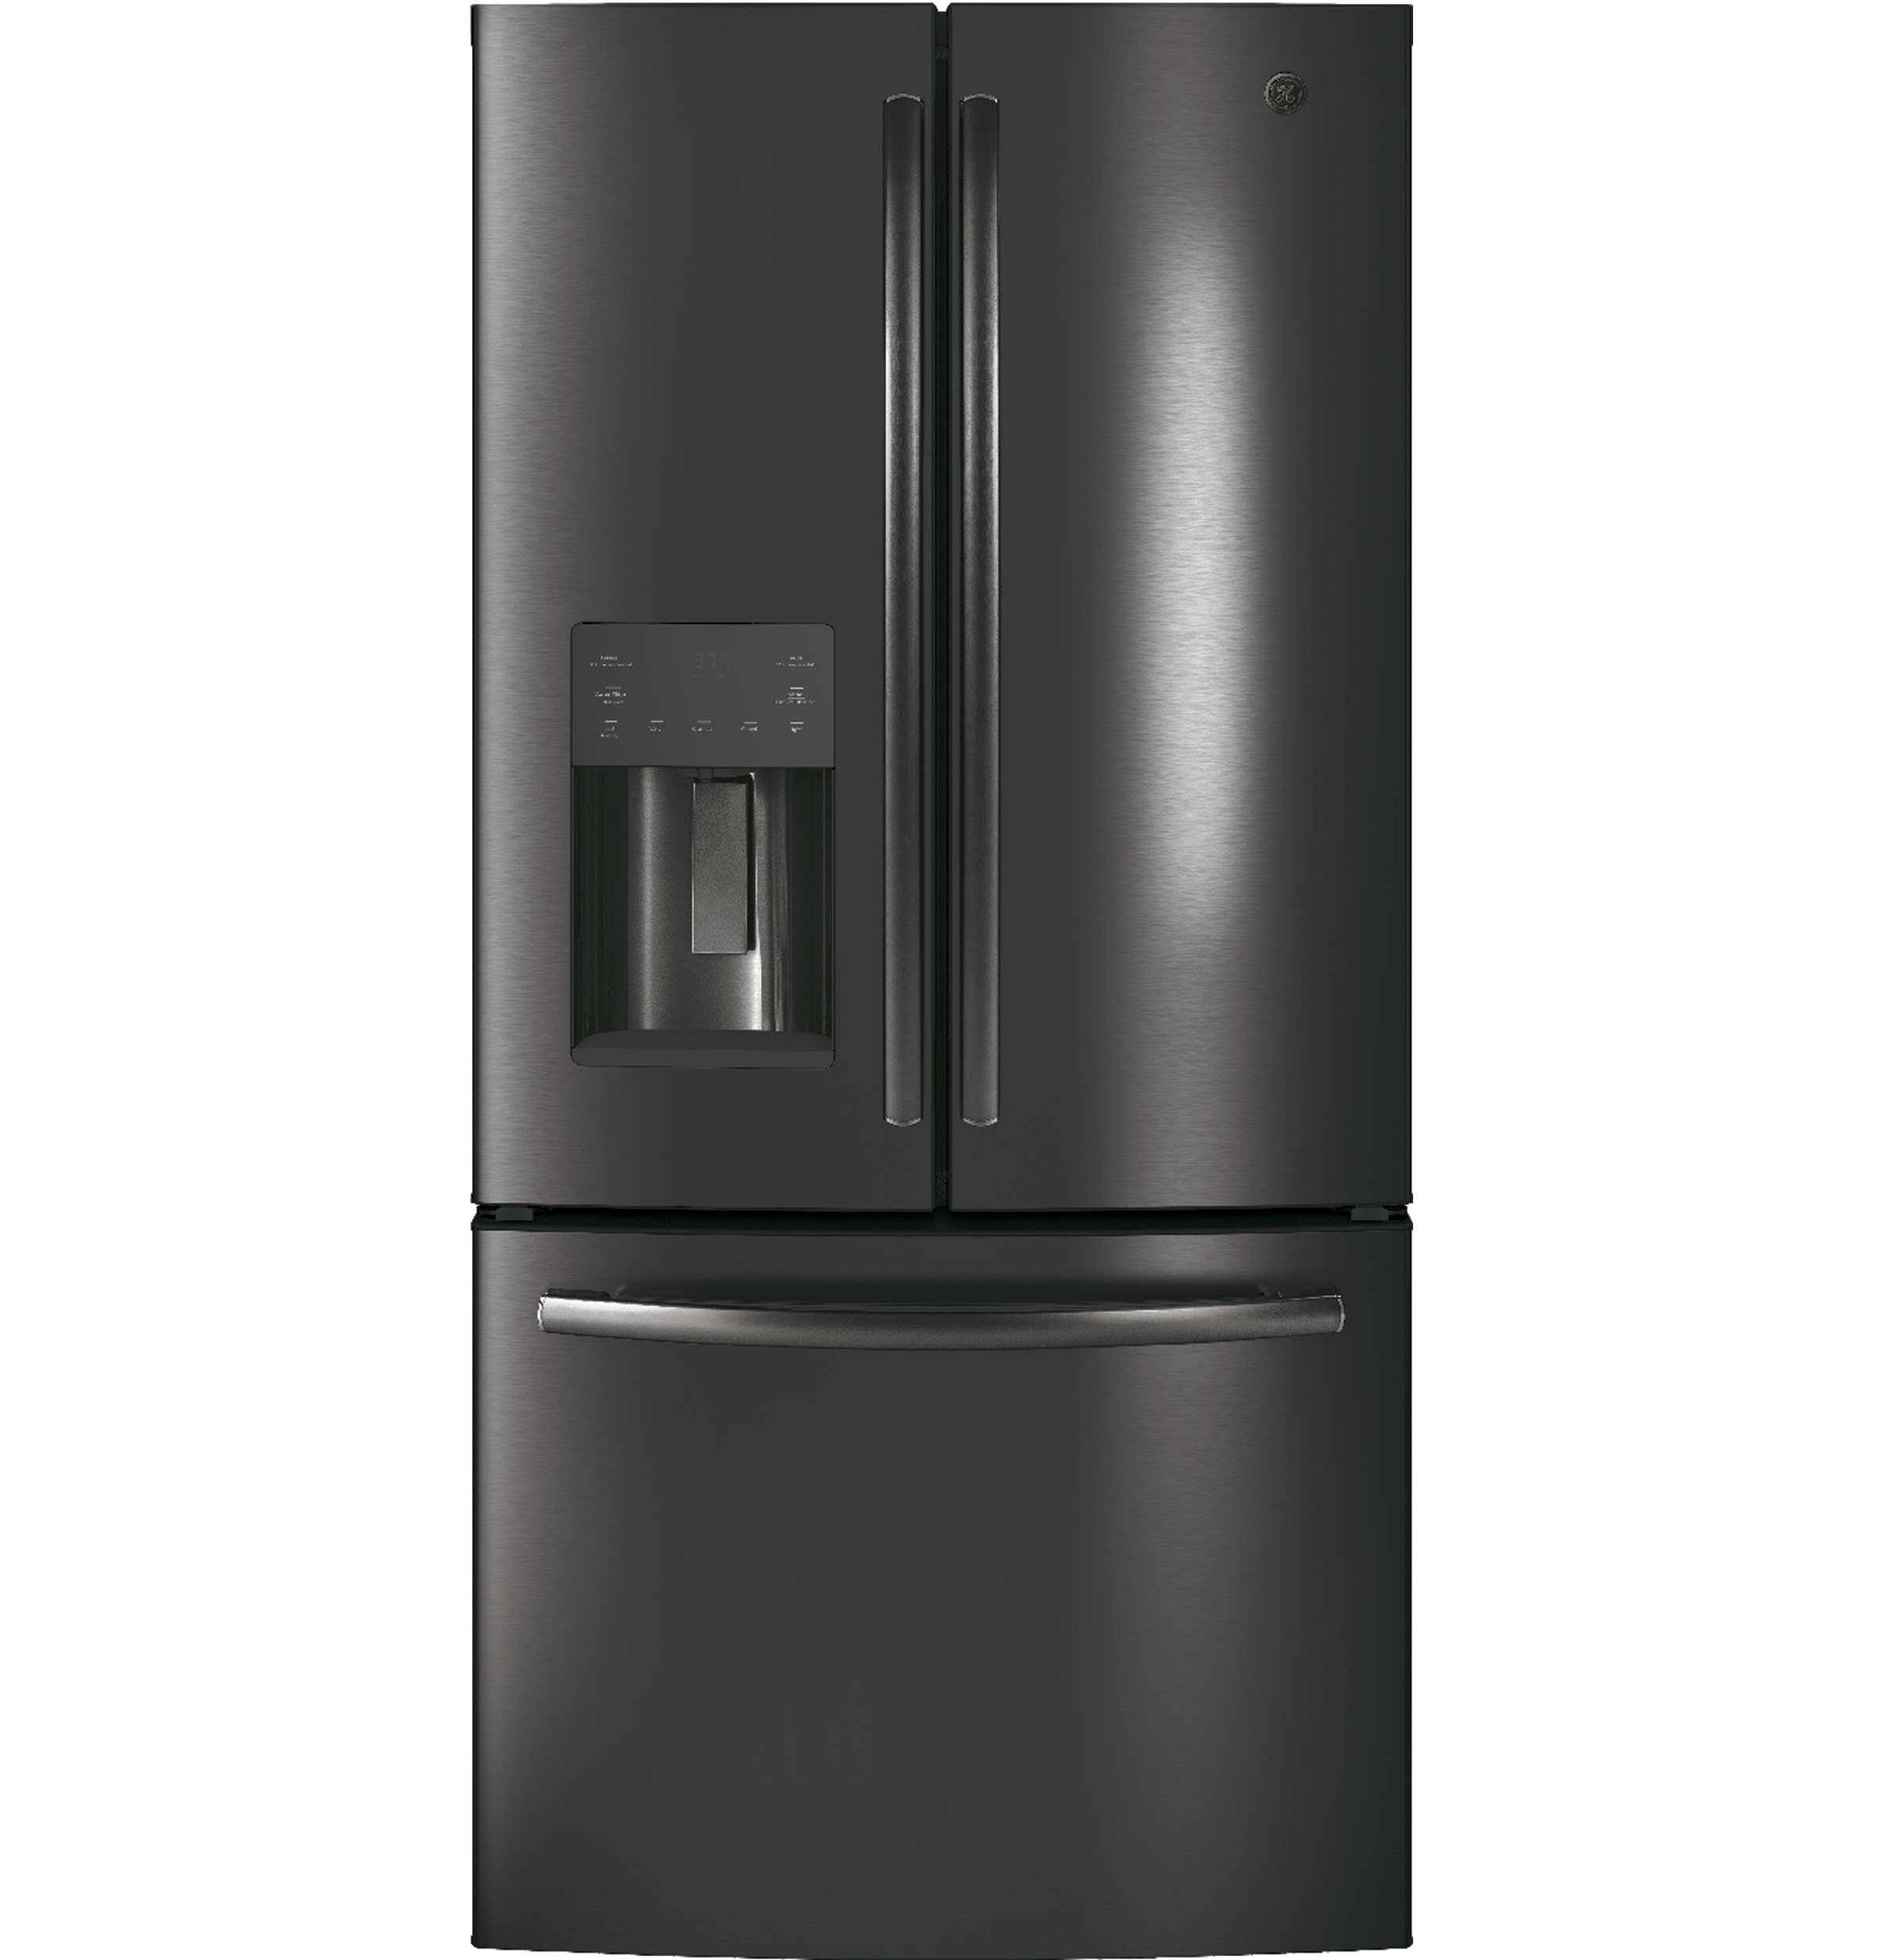 Model: GYE18JBLTS | GE GE® ENERGY STAR® 17.5 Cu. Ft. Counter-Depth French-Door Refrigerator